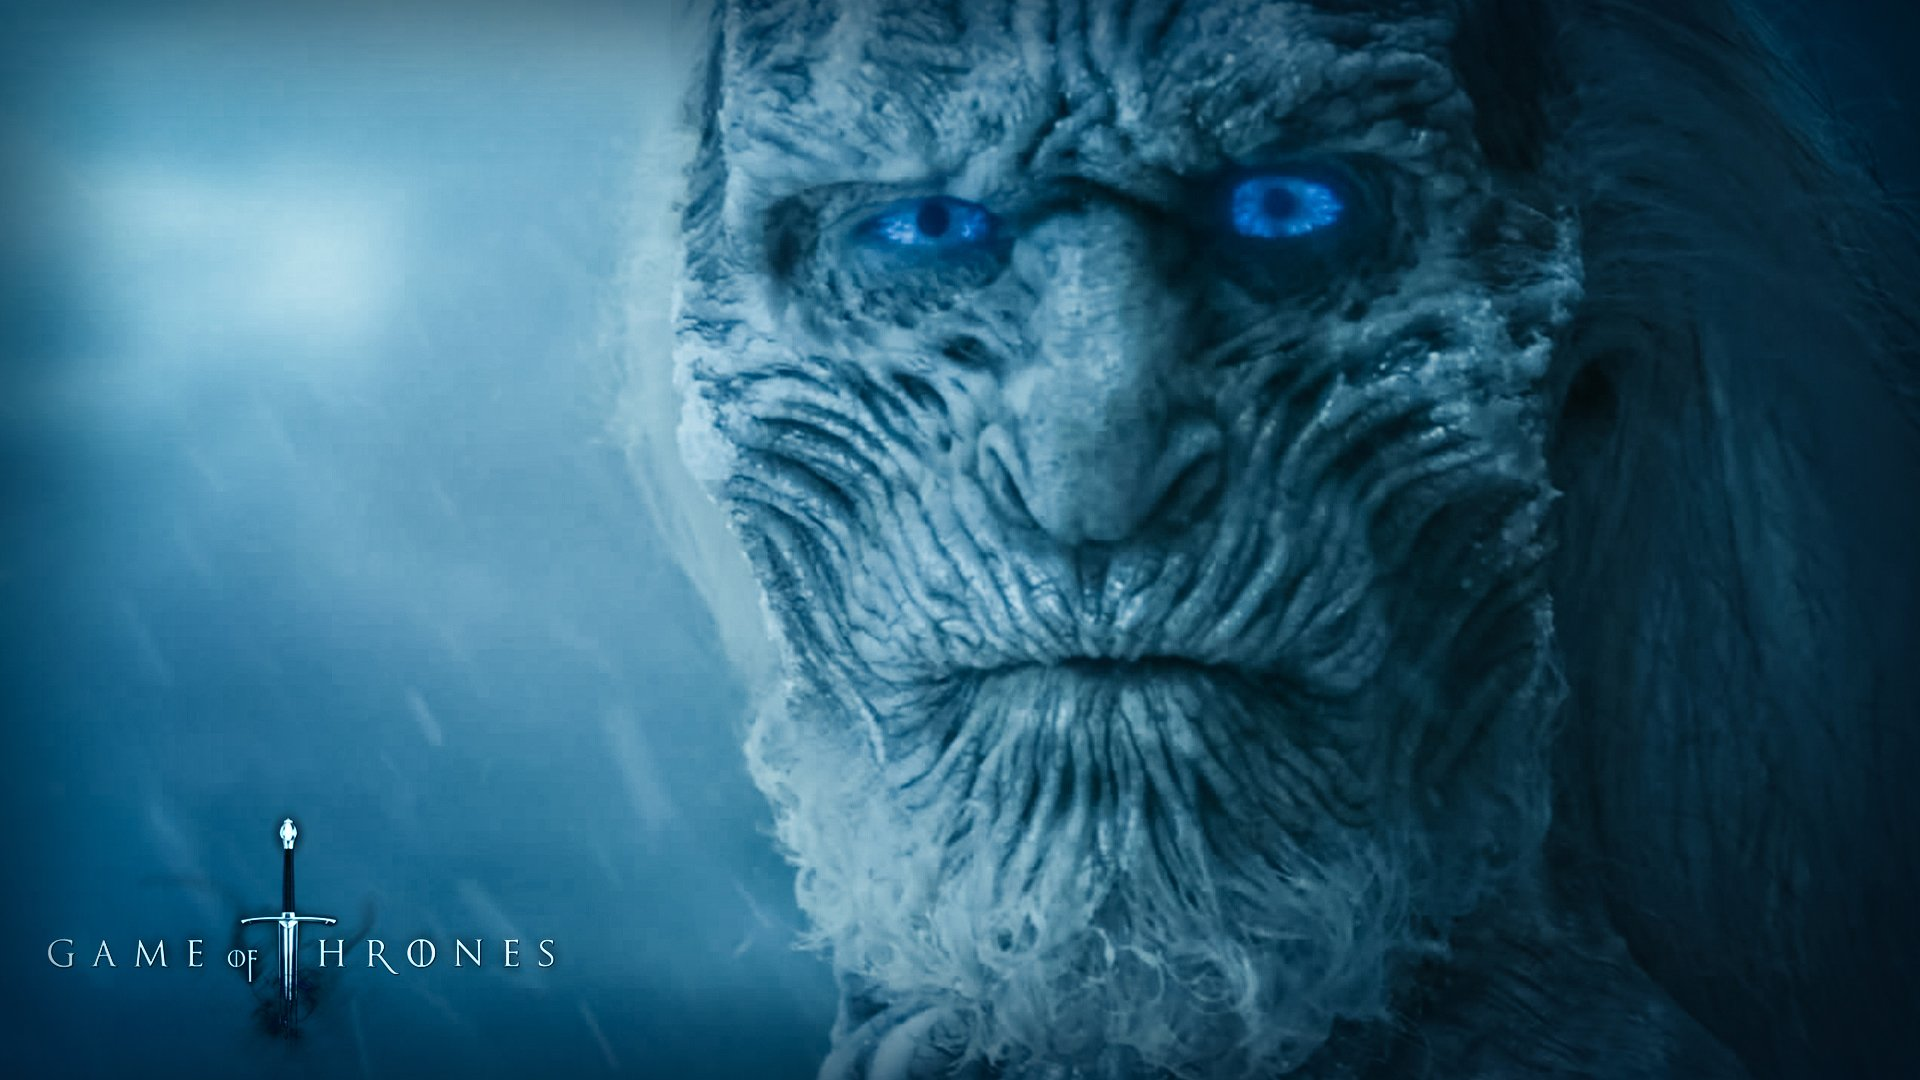 game of thrones imagens The White Walkers HD wallpaper and 1920x1080